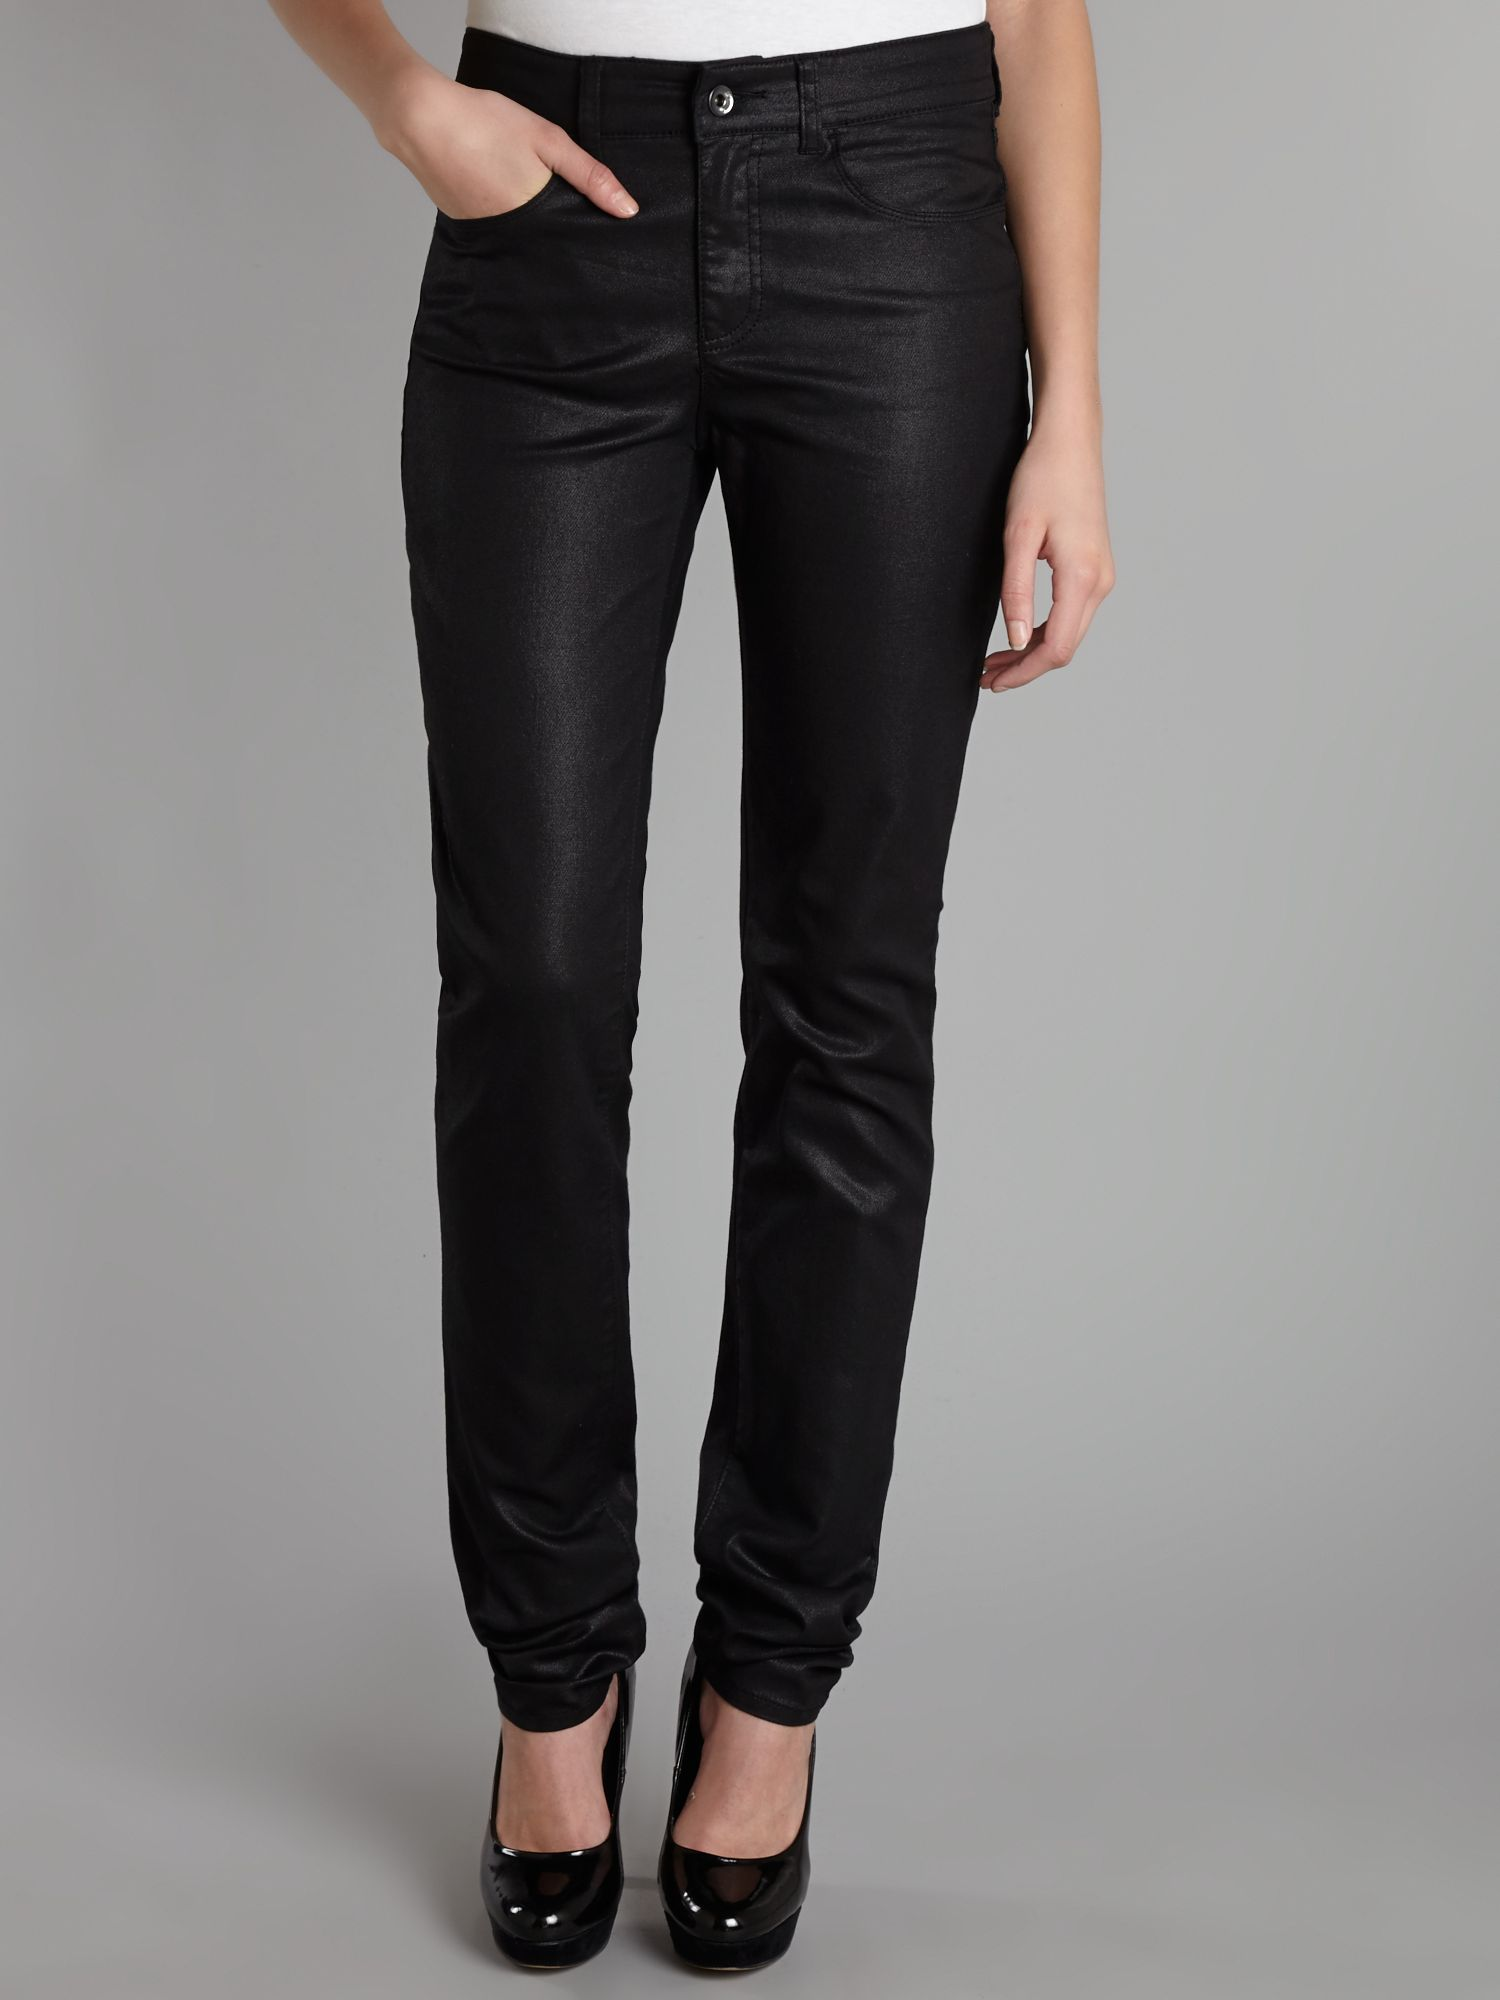 J18 high-rise slim leg metallic jeans